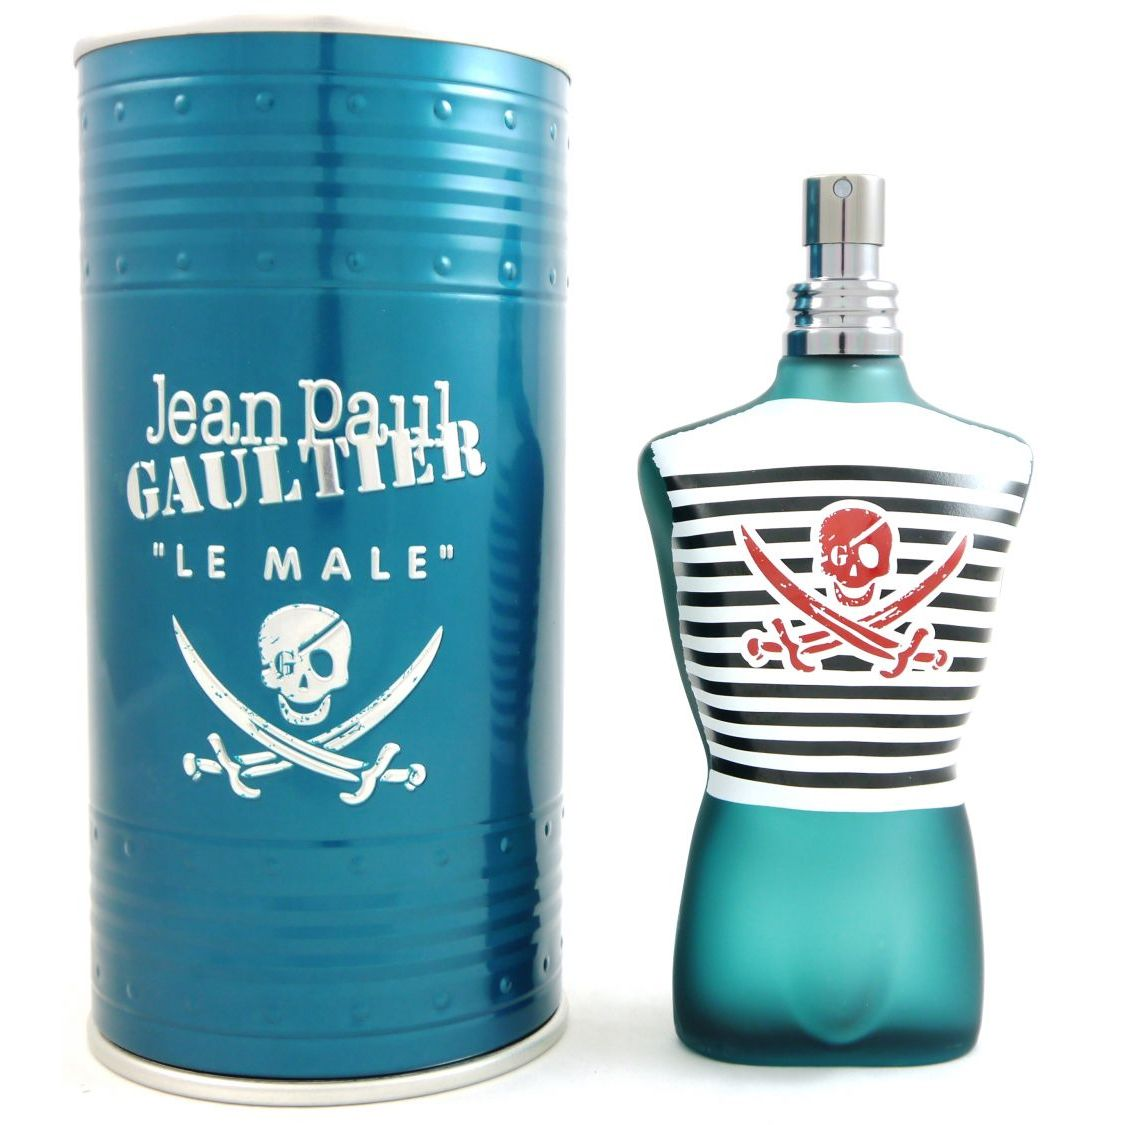 Jean Paul Gaultier Le Male 125 Ml Pirate Limited Edition